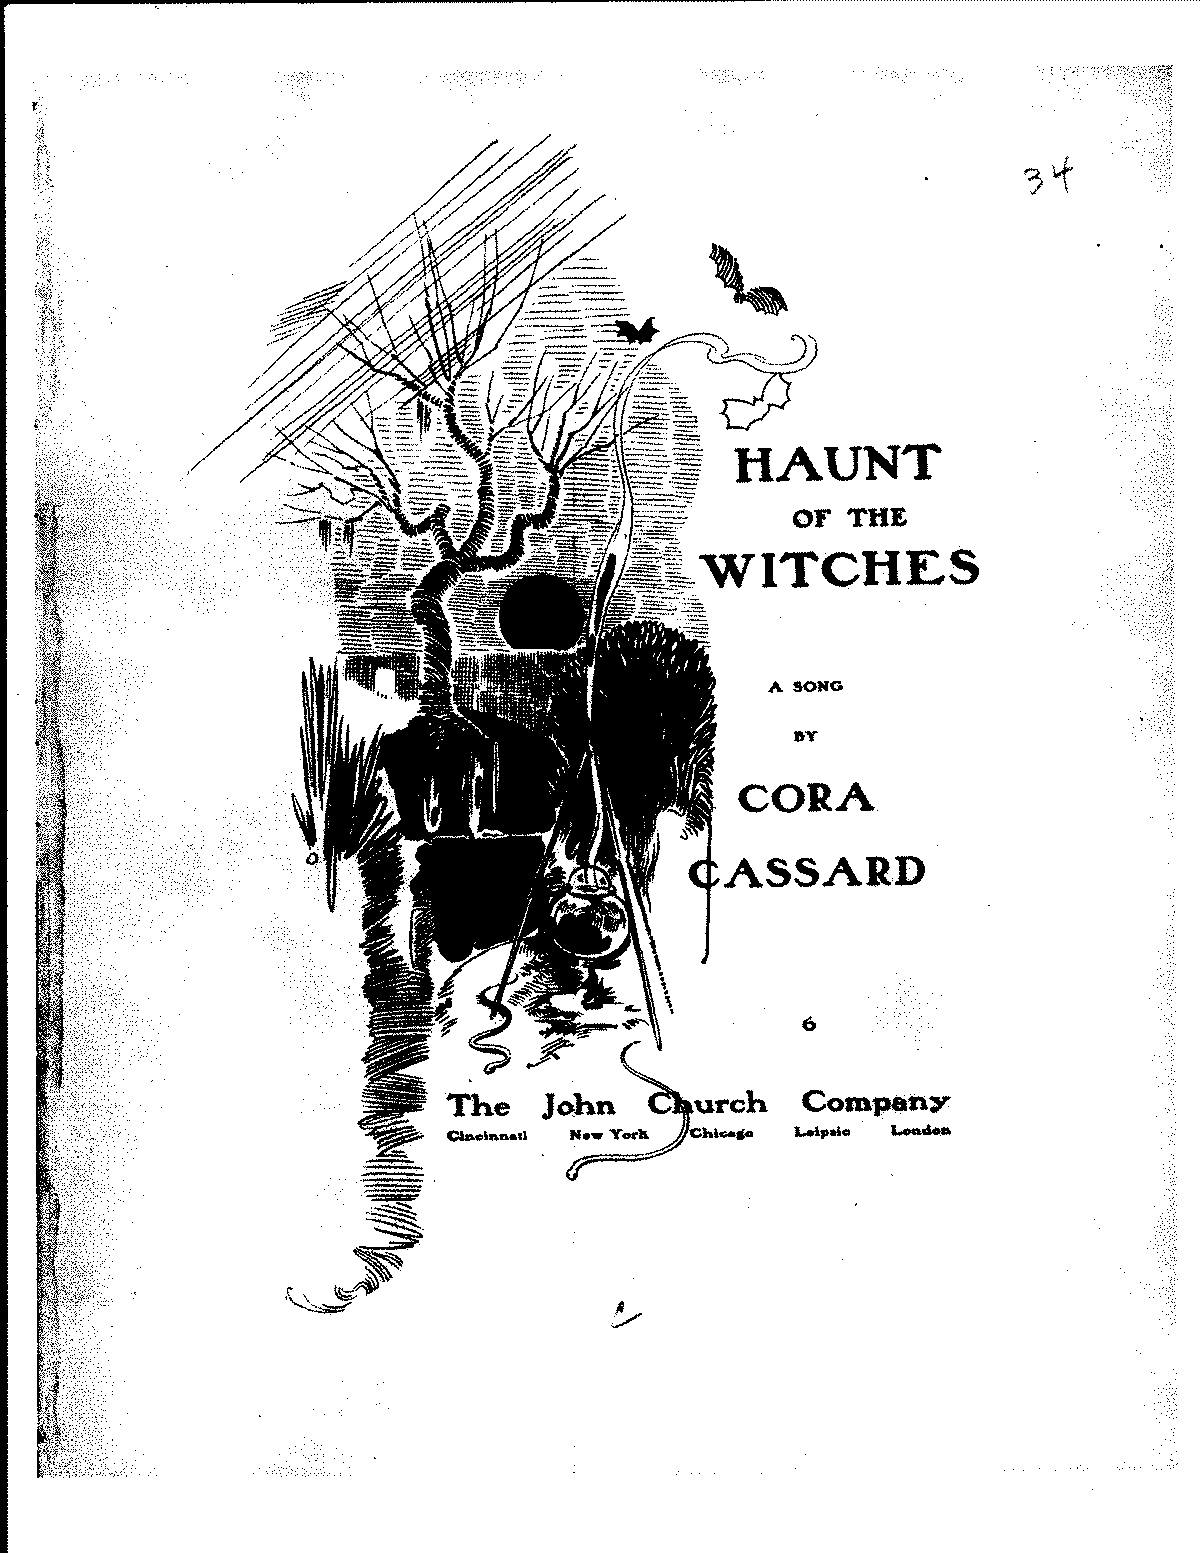 SIBLEY1802.1957.d975-Cassard Haunt of the Witches.pdf